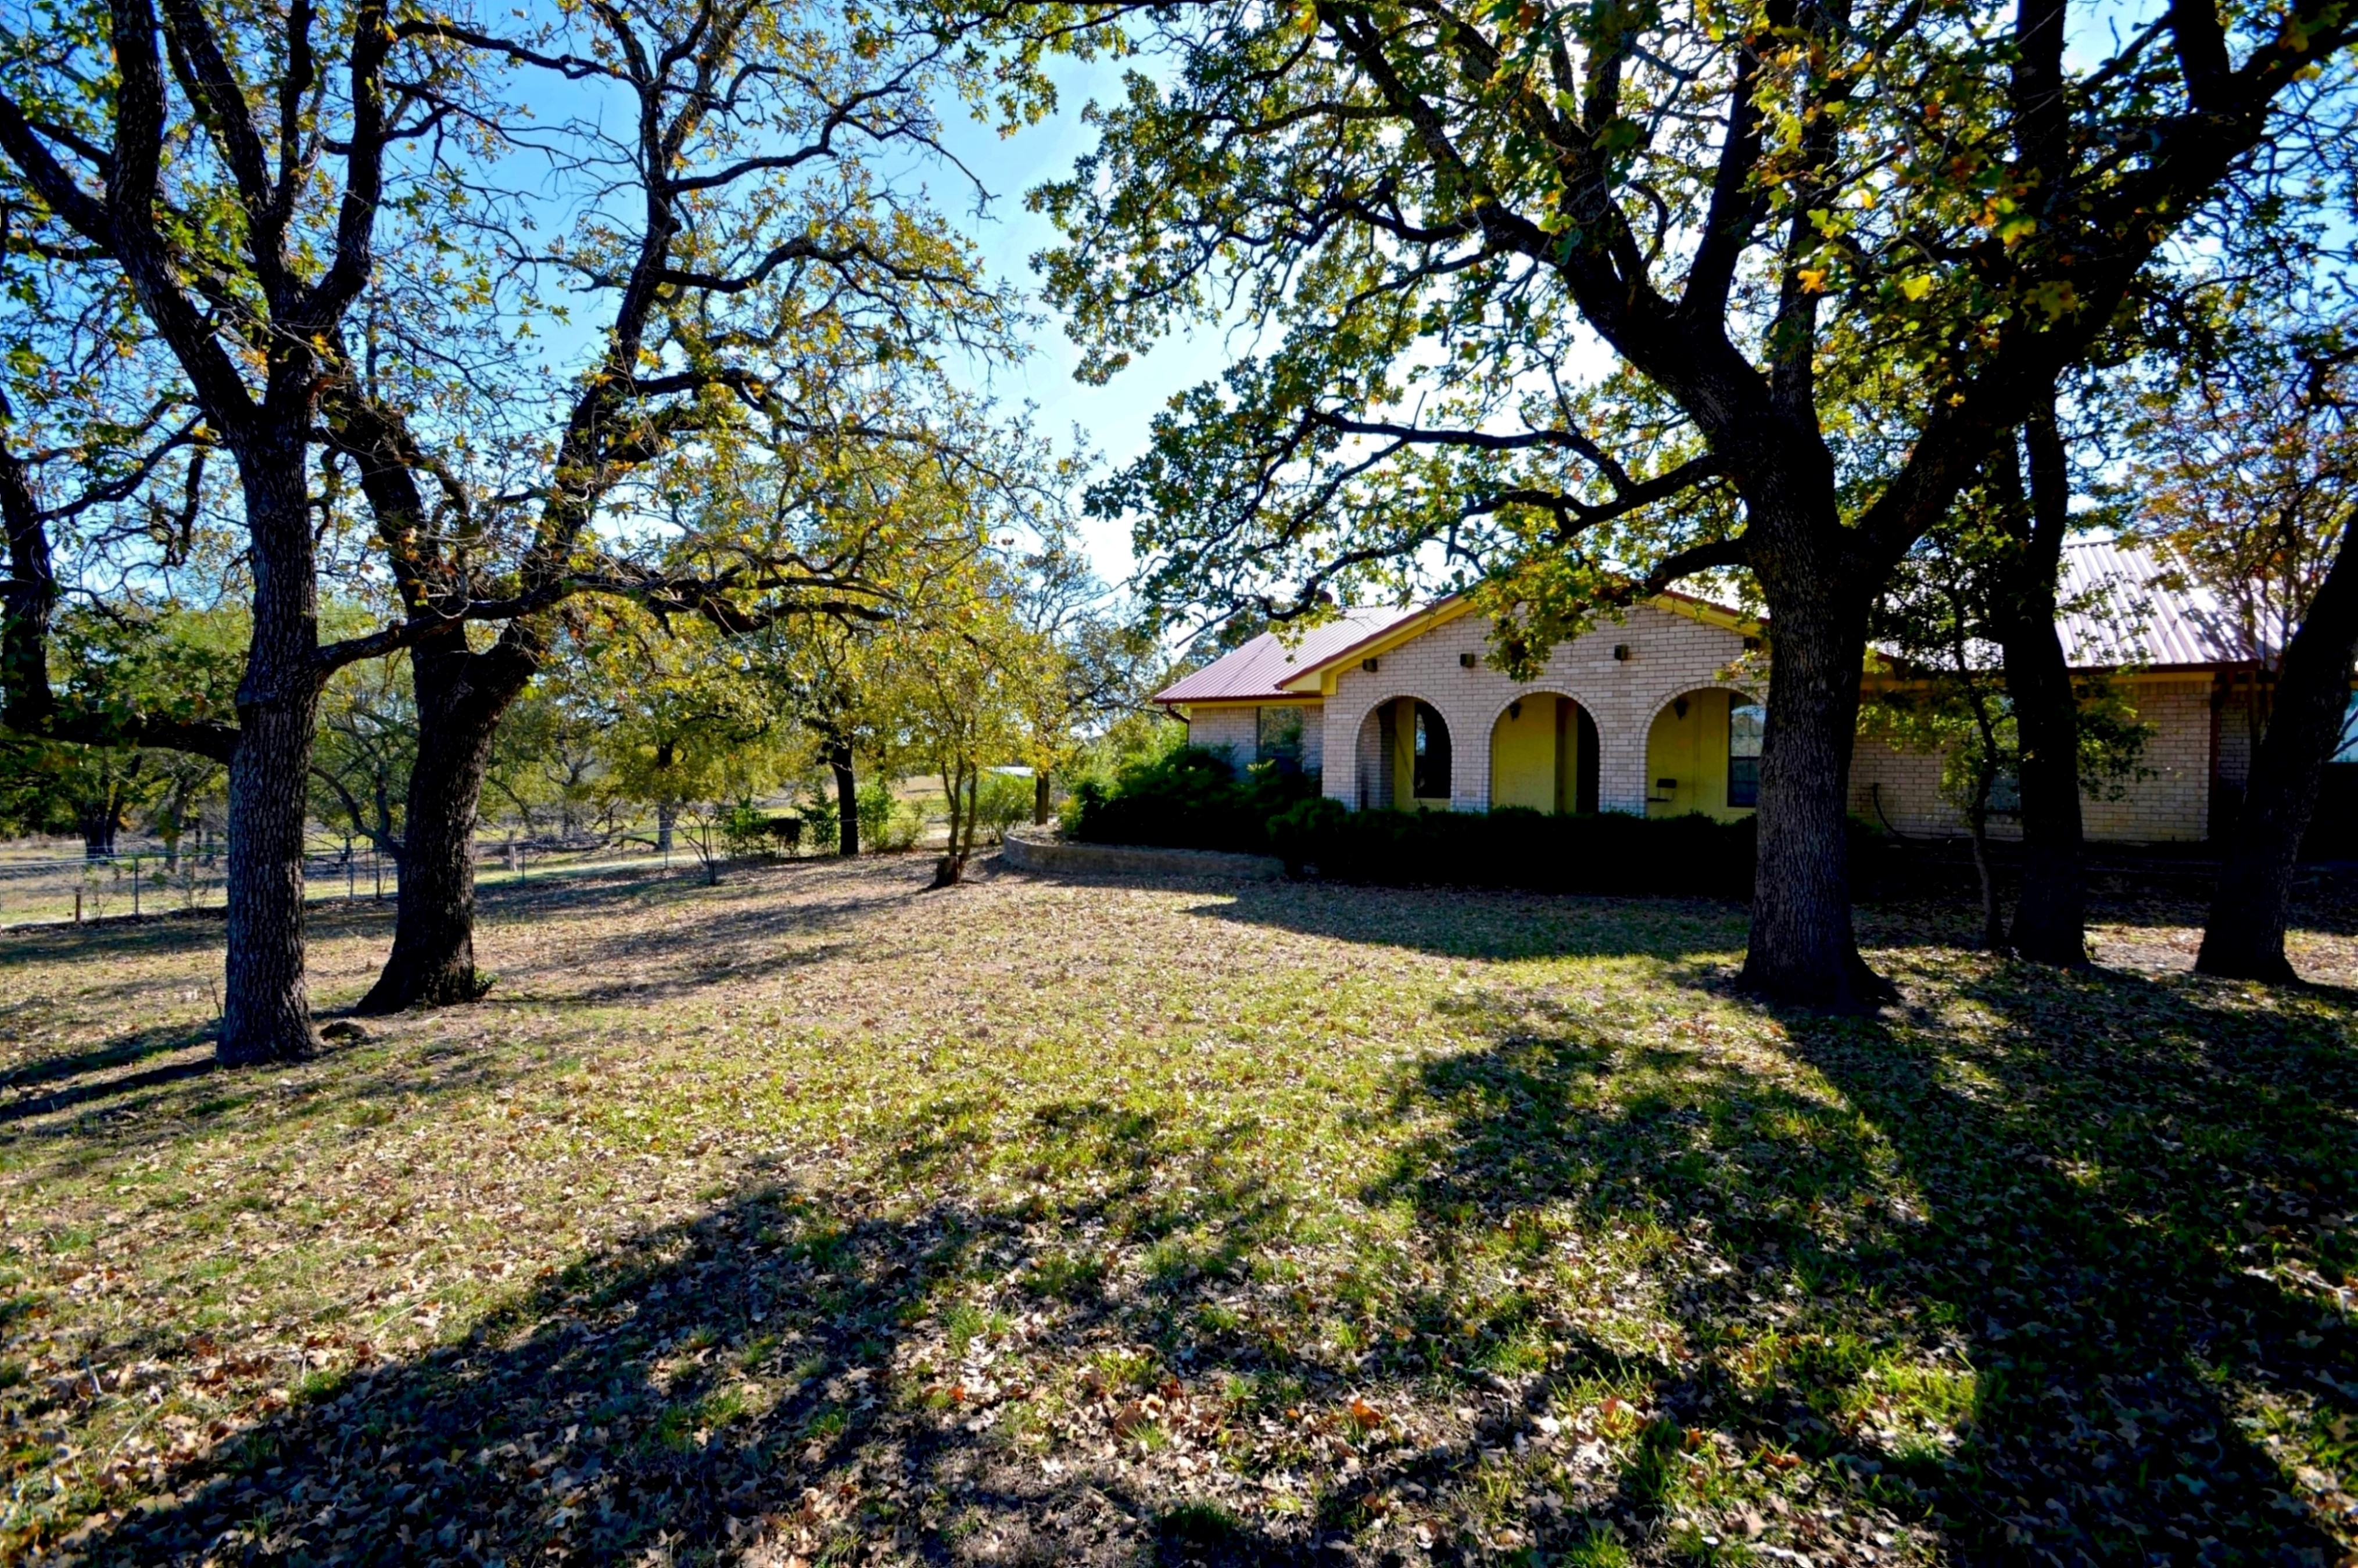 Home for sale: 1046 County Road 111, Lampasas, Tx